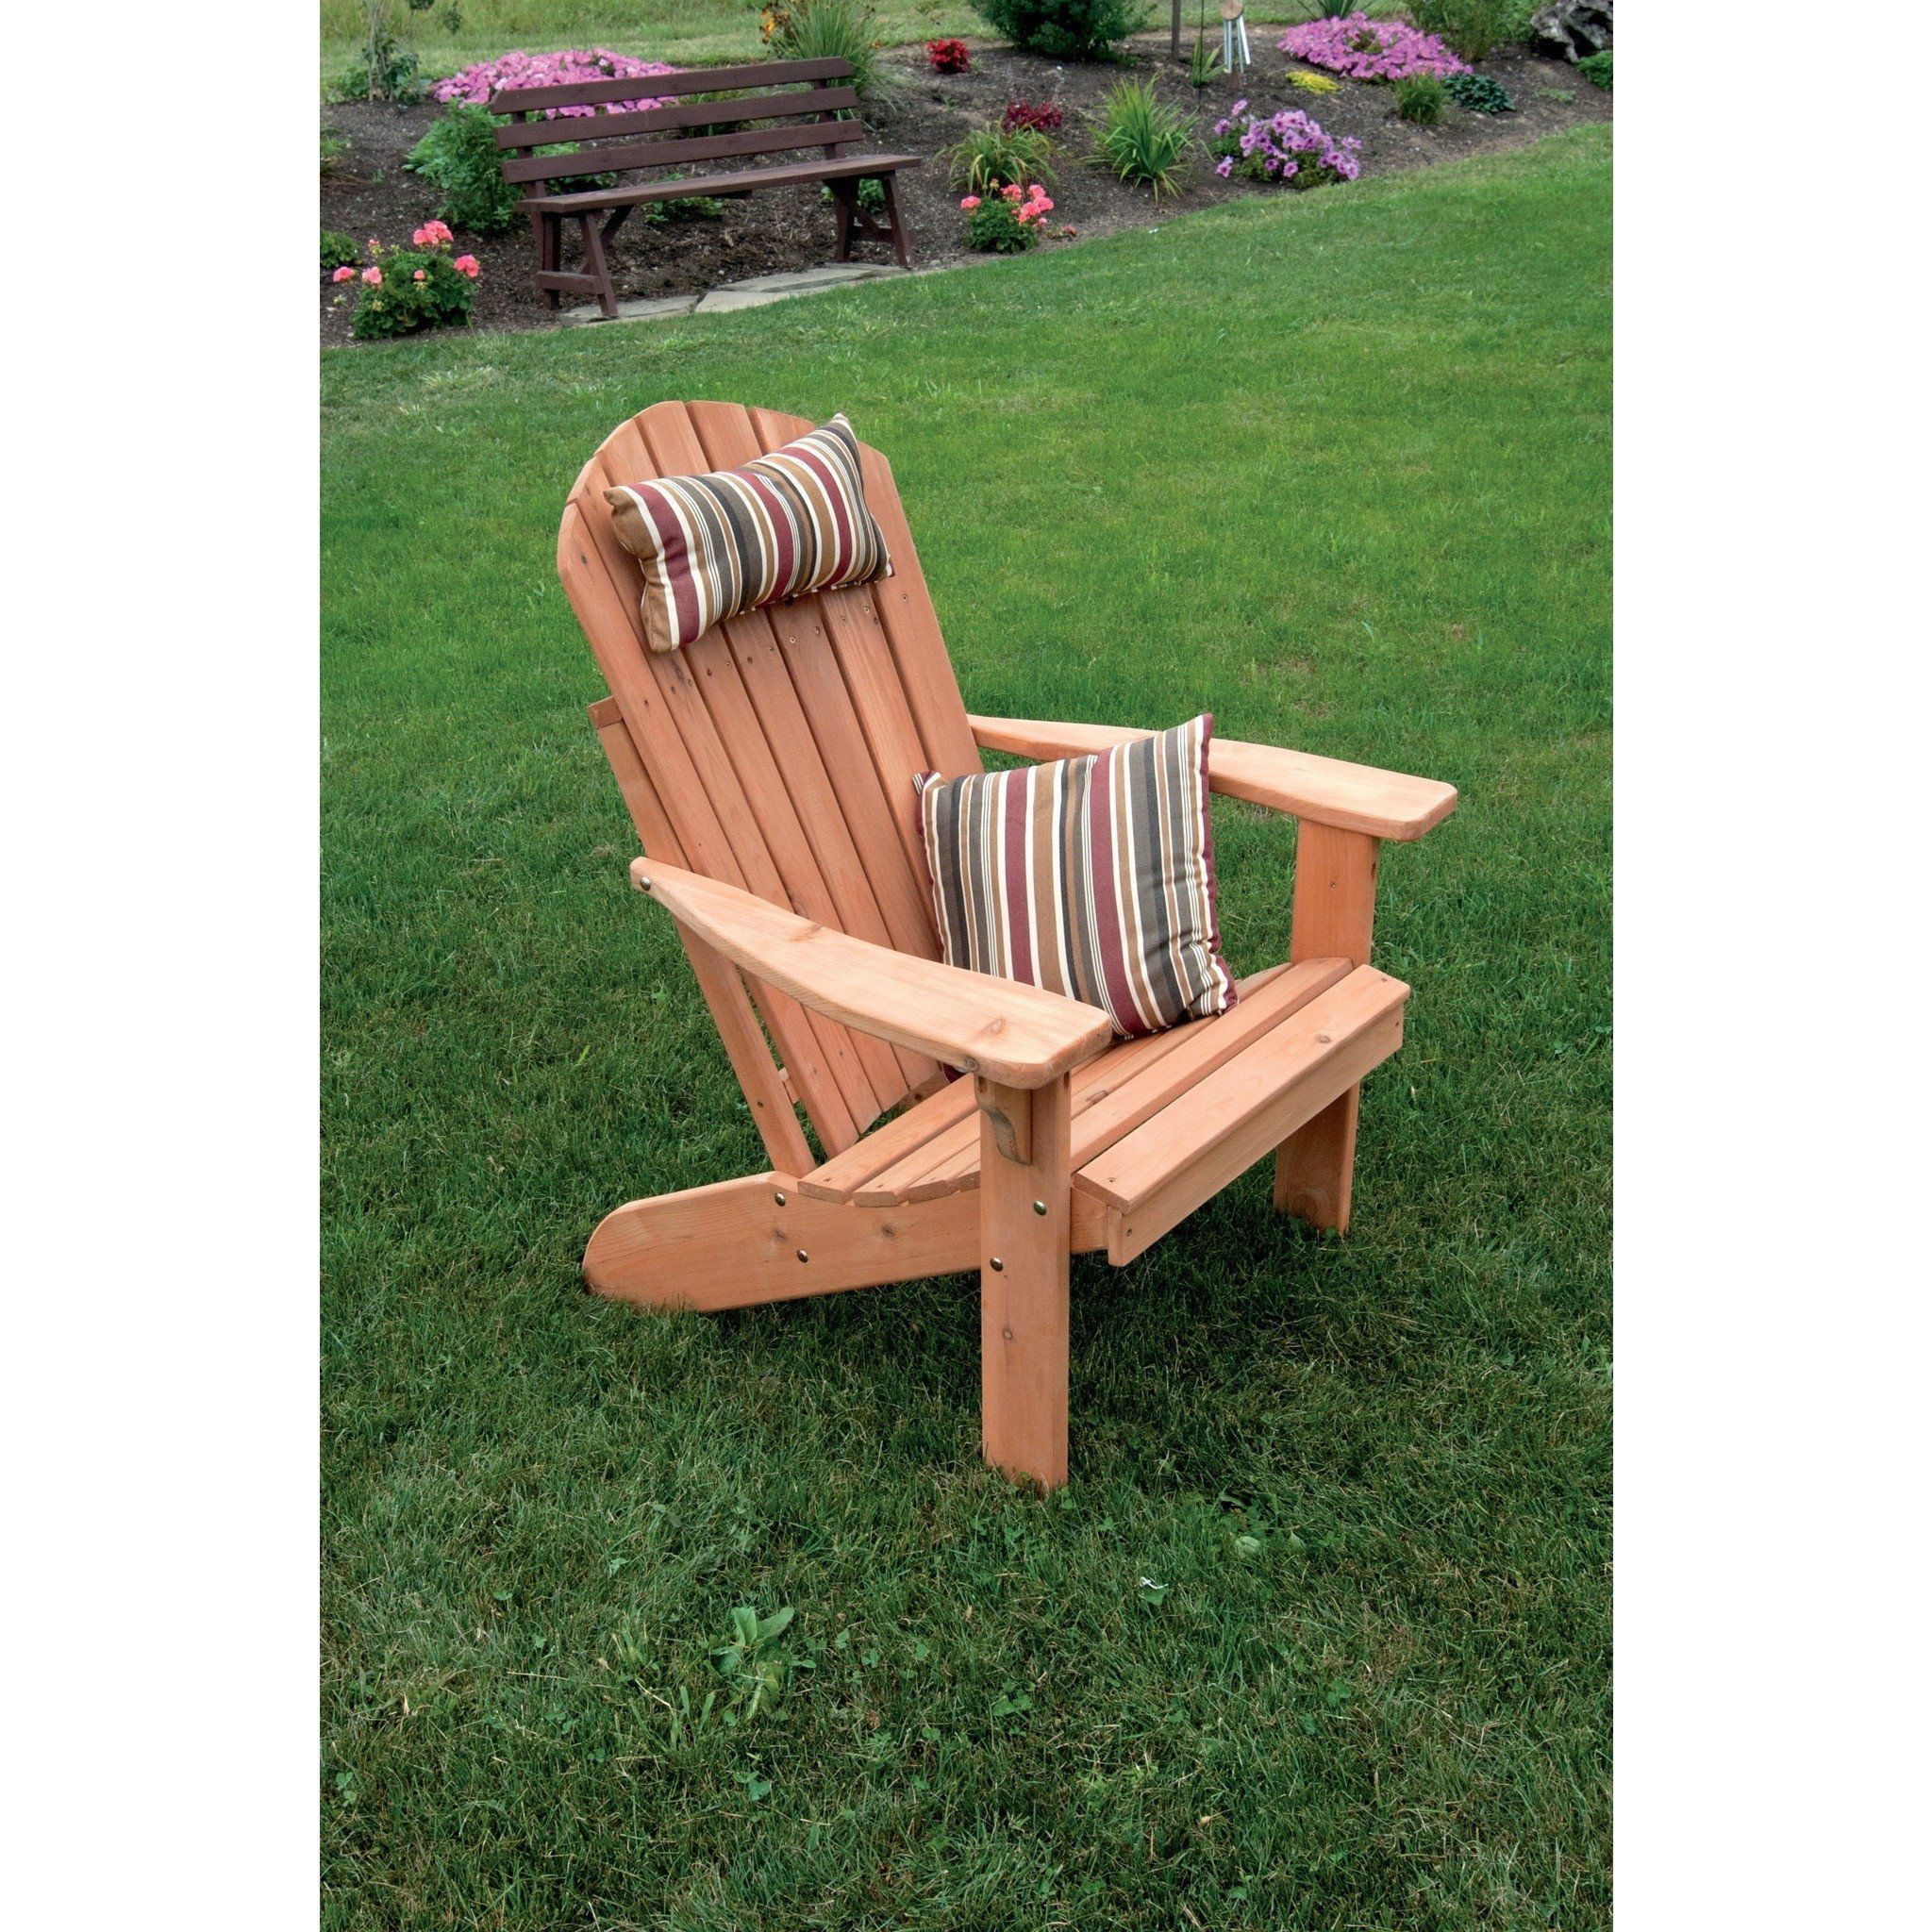 A L Furniture Co Western Red Cedar Fanback Adirondack Chair Ships Free In 5 7 Business Days Outdoor Chairs Adirondack Chairs Rustic Furniture